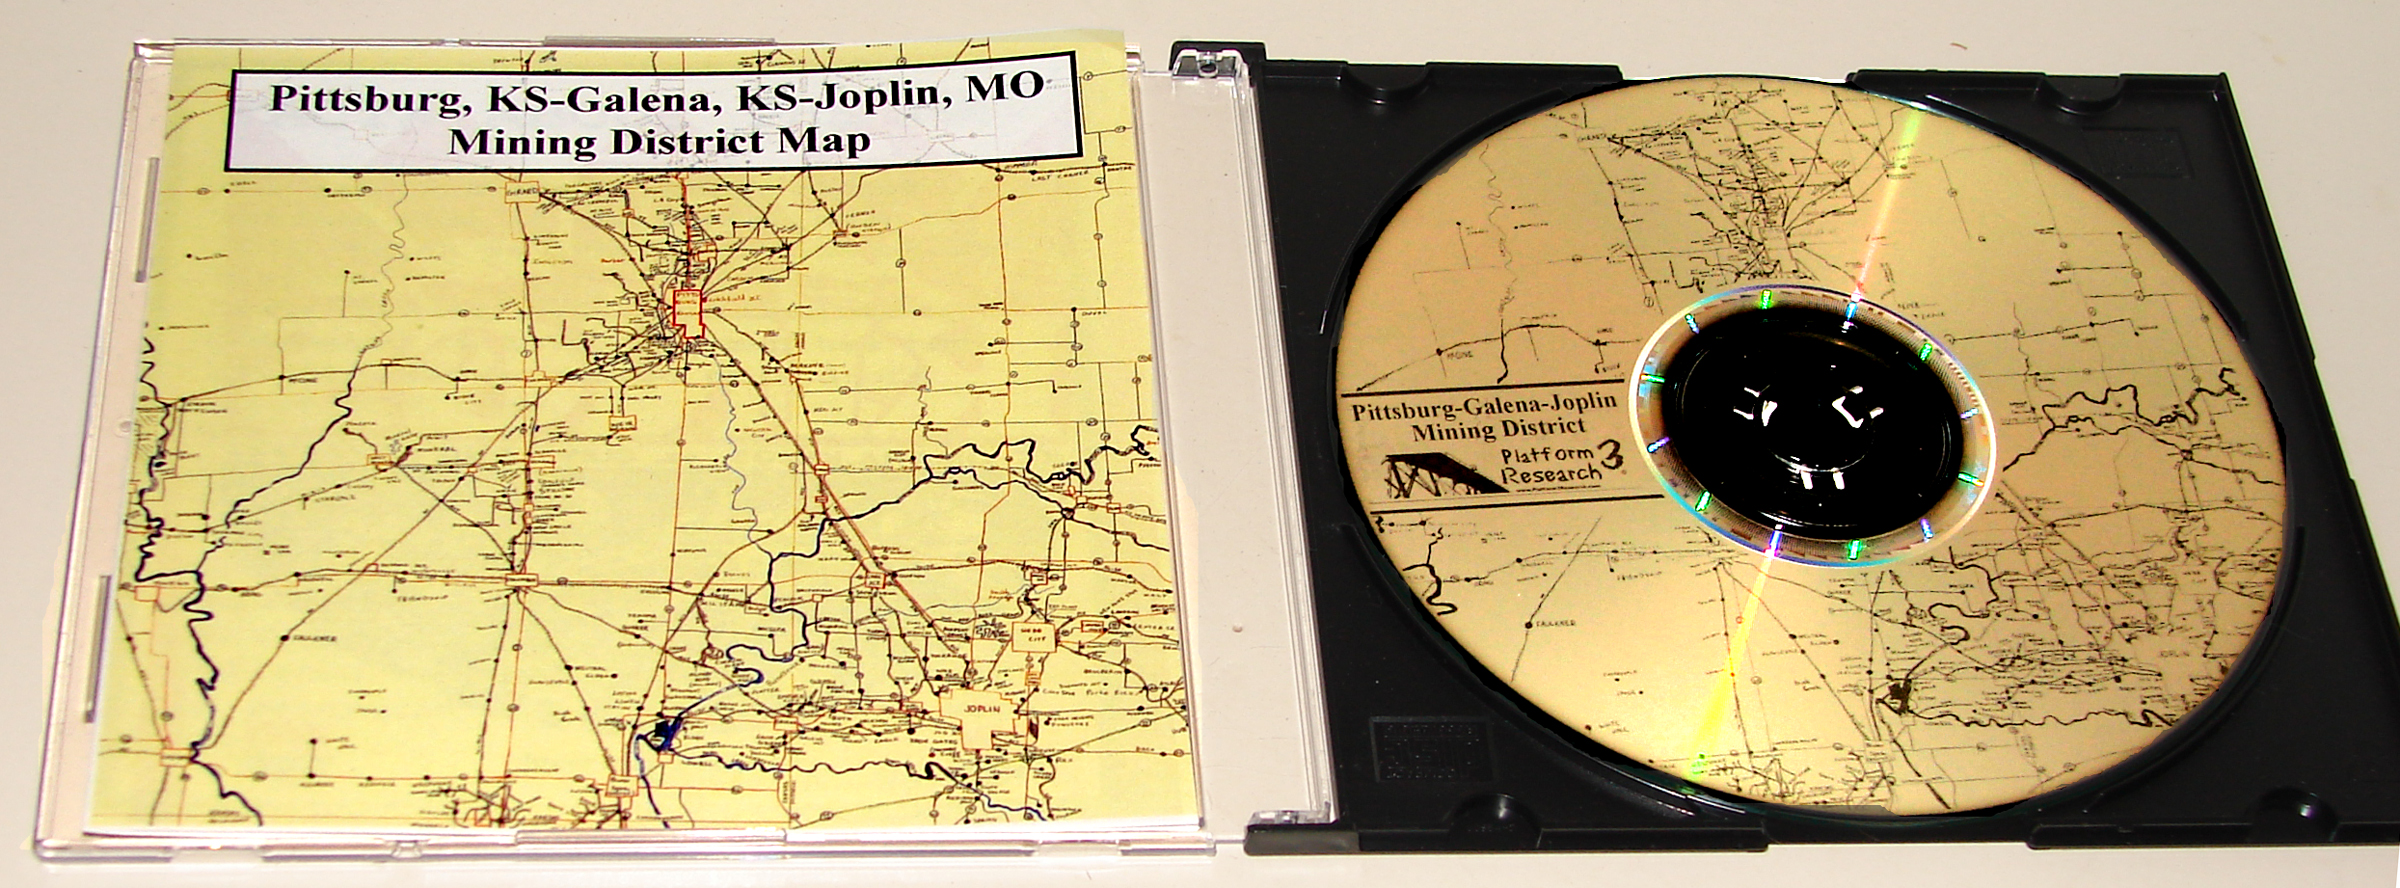 Pittsburg-Galena-Joplin Mining CD